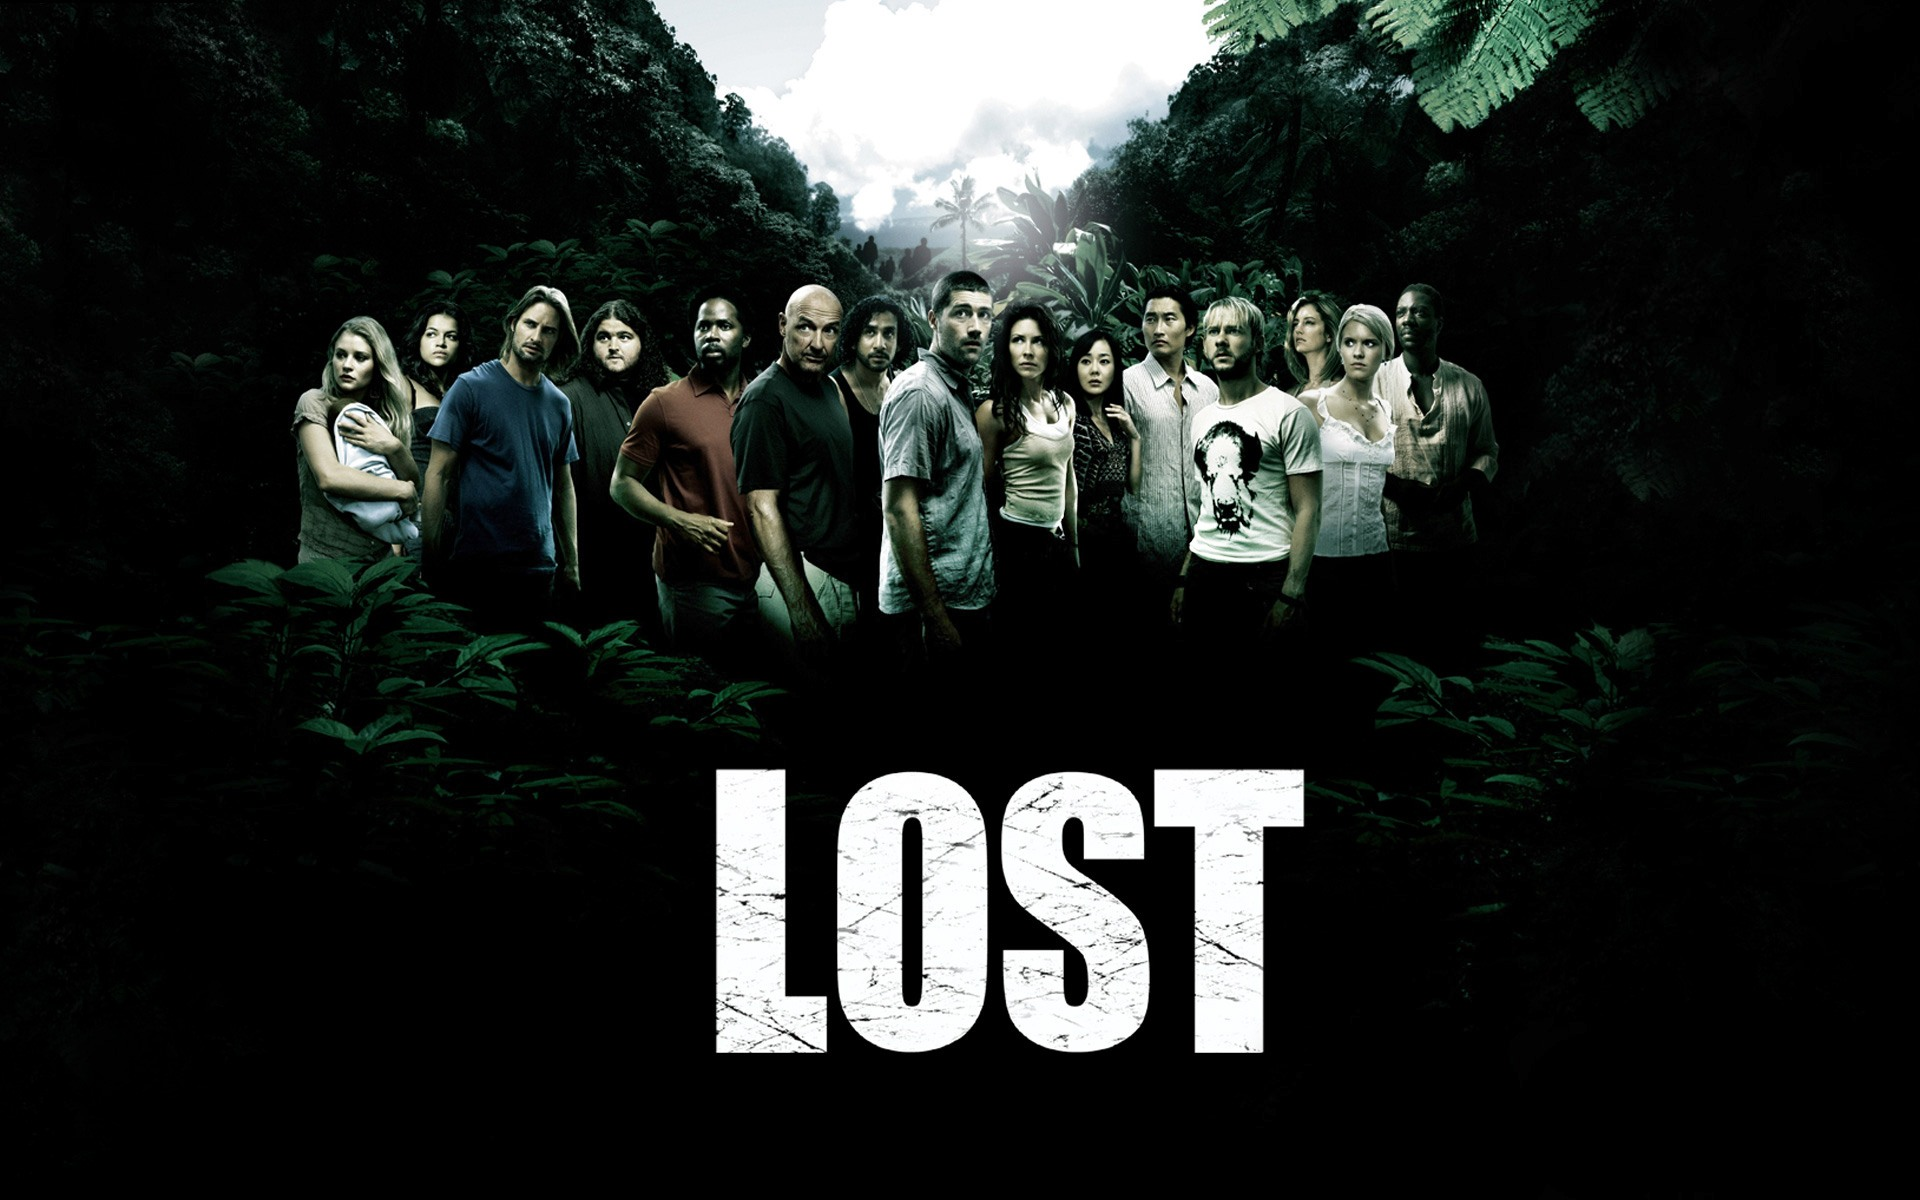 Lost TV Series Widescreen Wallpapers HD Wallpapers 1920x1200